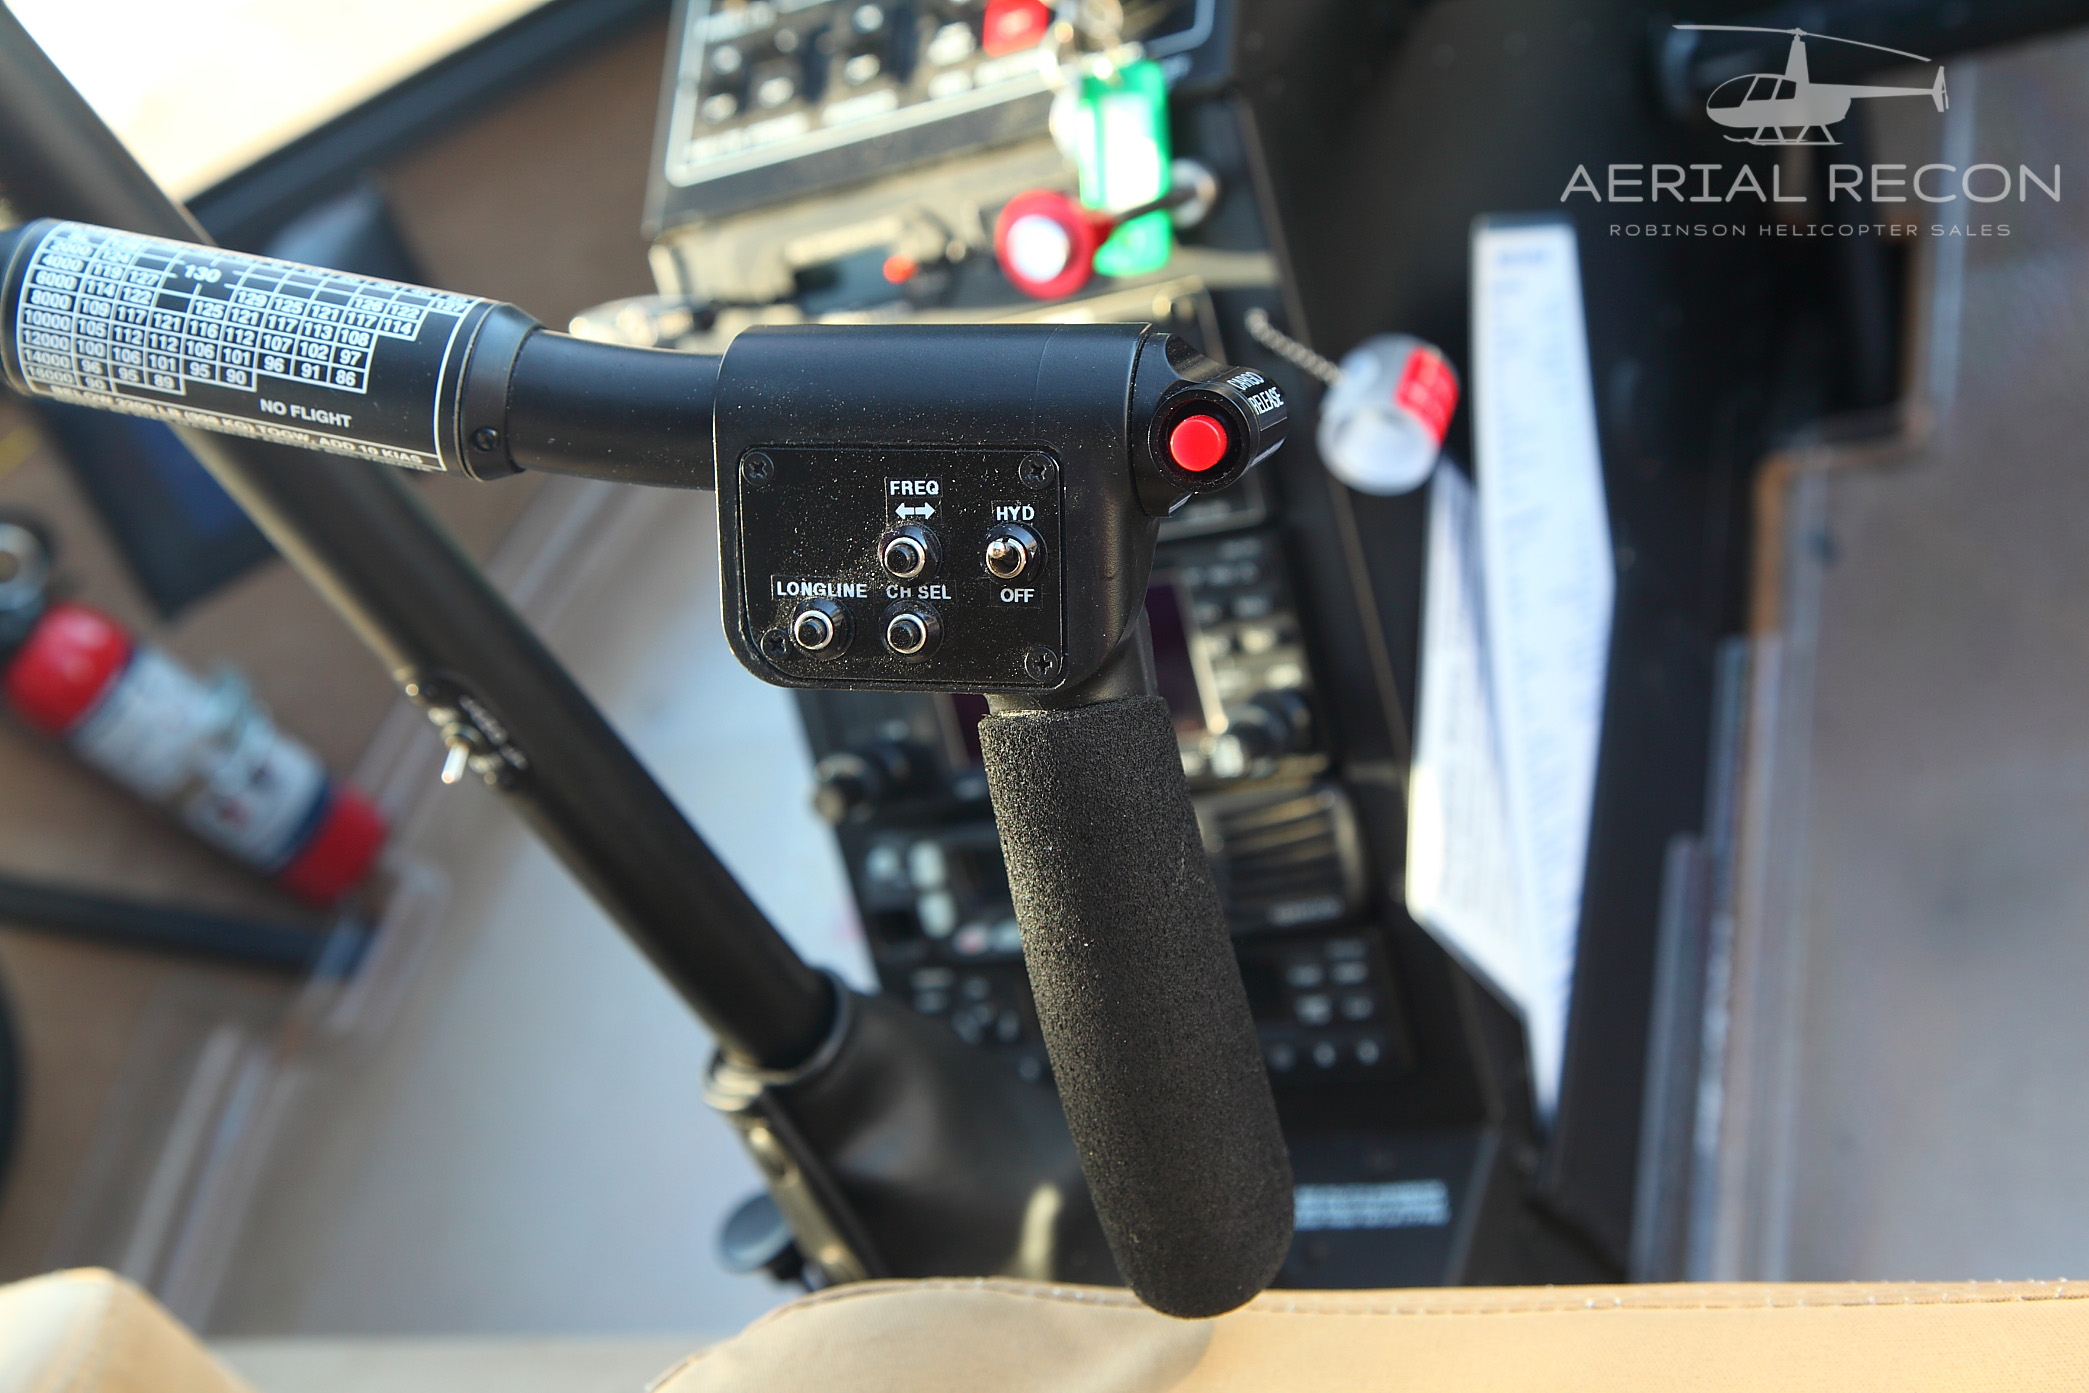 R66 C Gwpv Aerial Recon Ltd Robinson Helicopter Dealer Circuitbreakerpaneljpg Overview